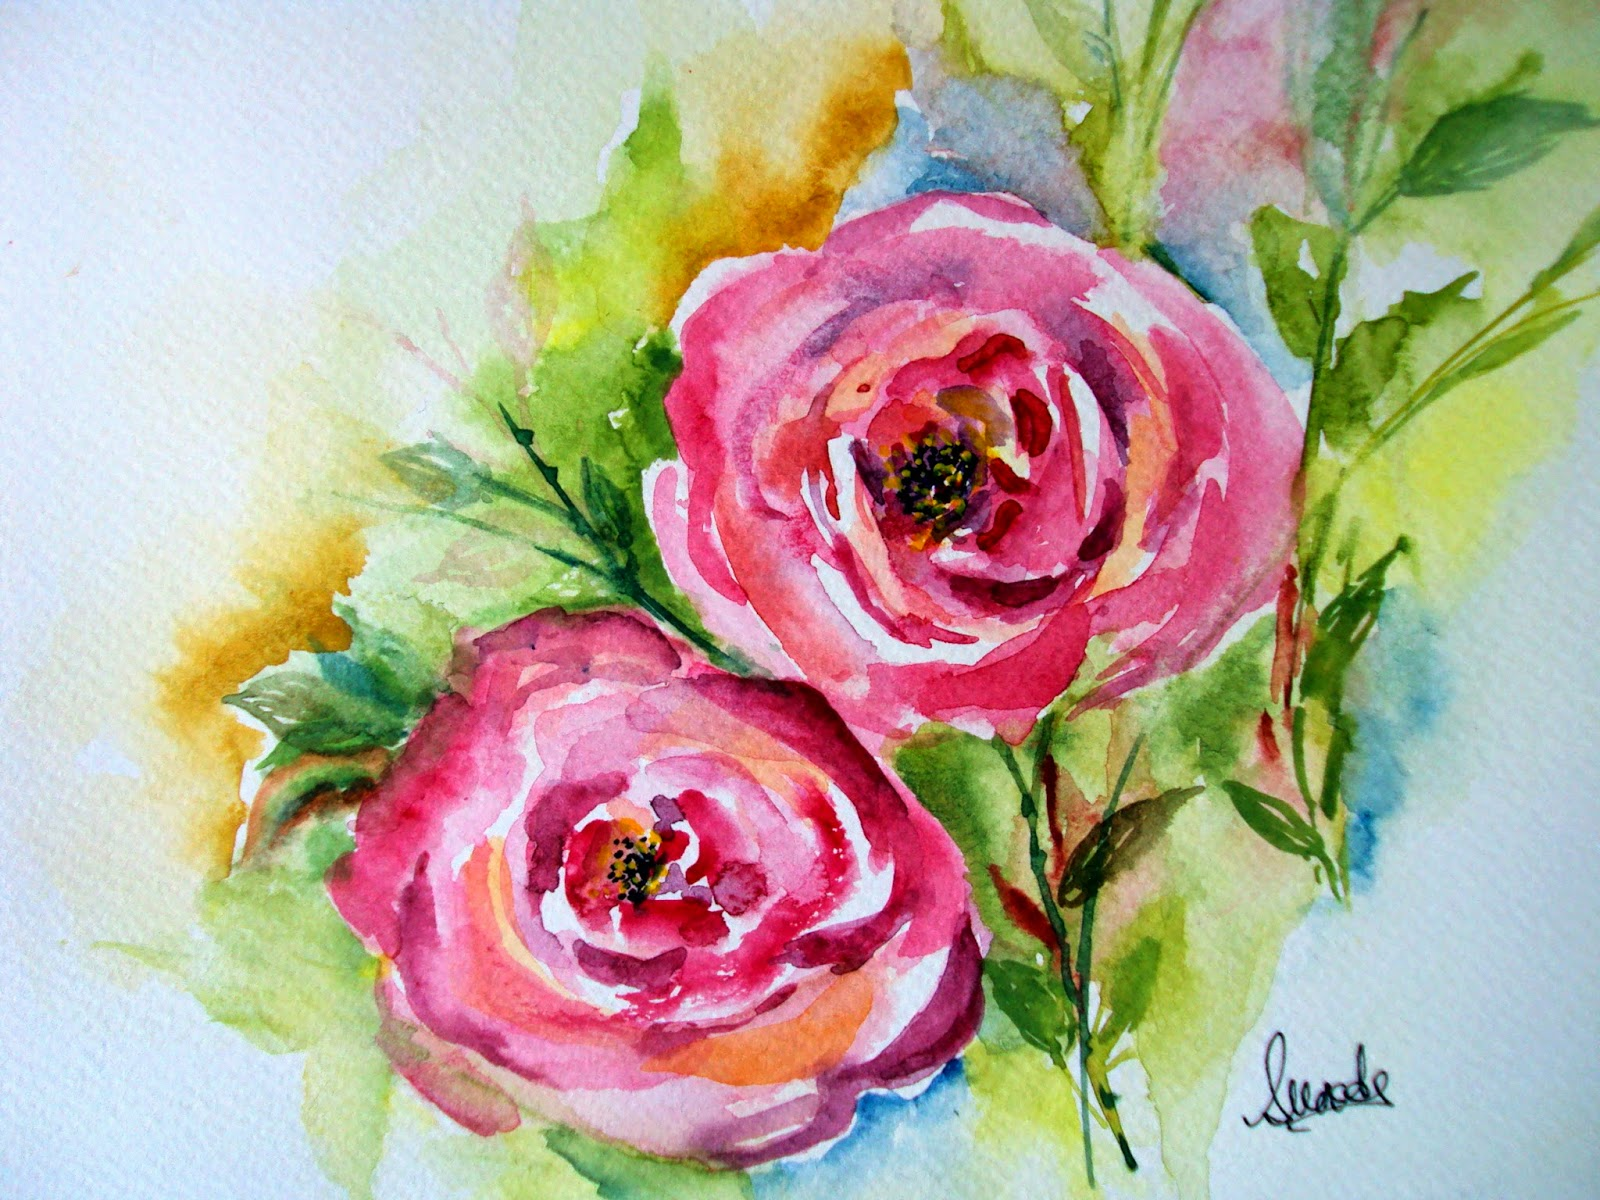 pink roses,flowers,twin,watercolour,painting,artist,floral,decor,art,singhroha,watercolor, rose,